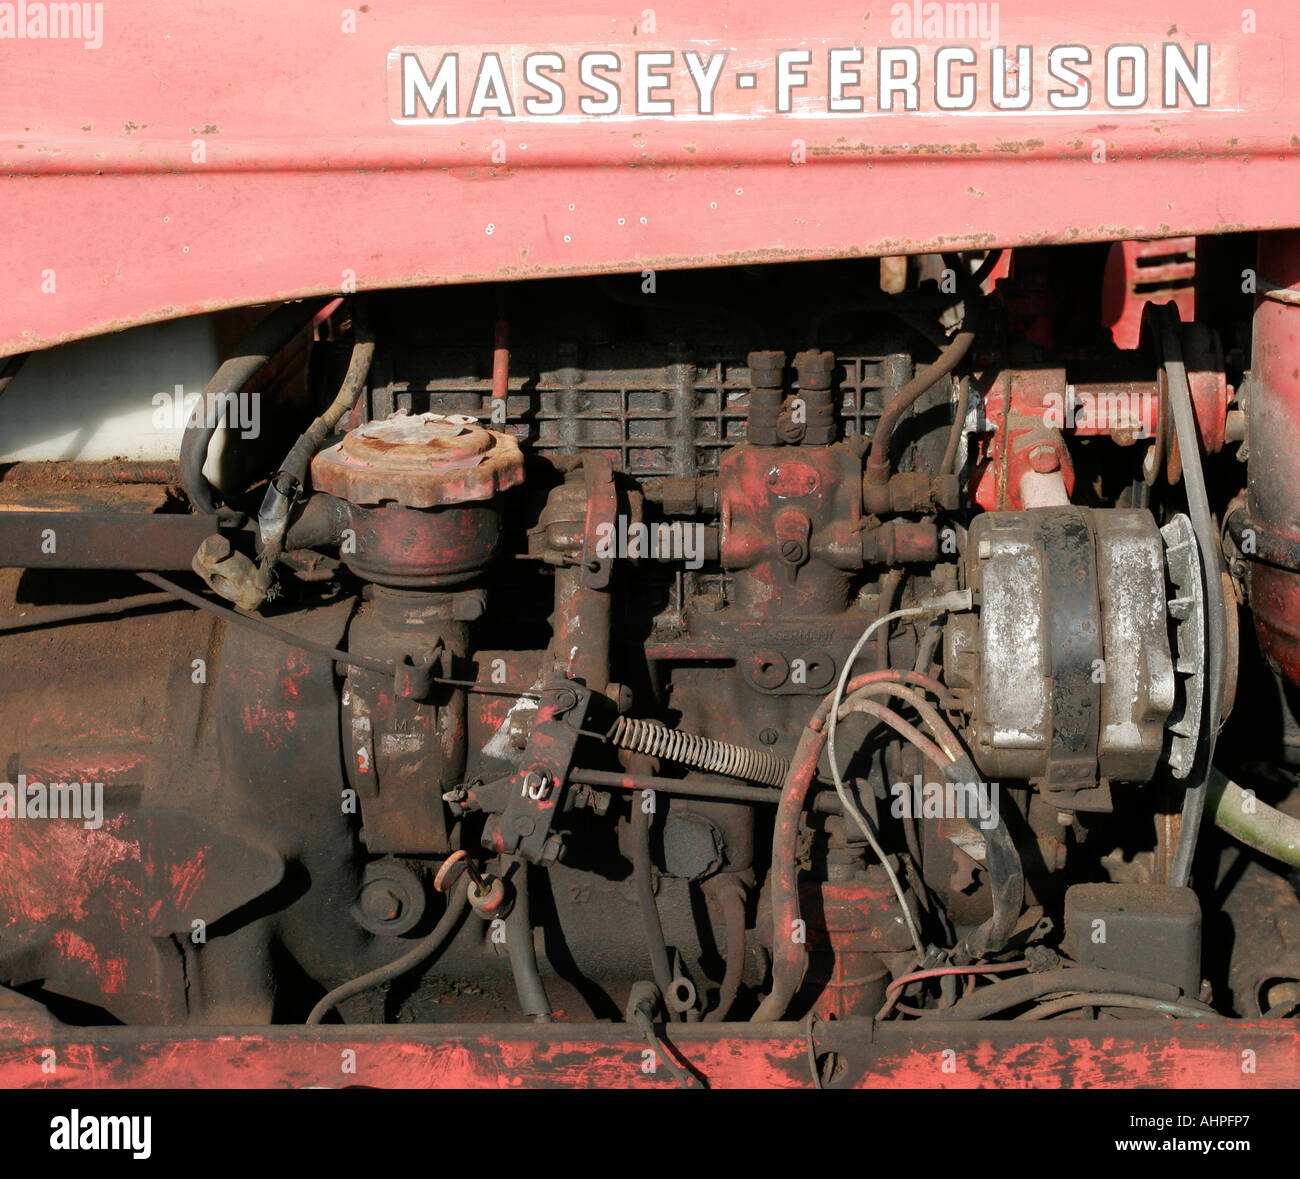 how to change oil massey ferguson 35 perkins diesel engine